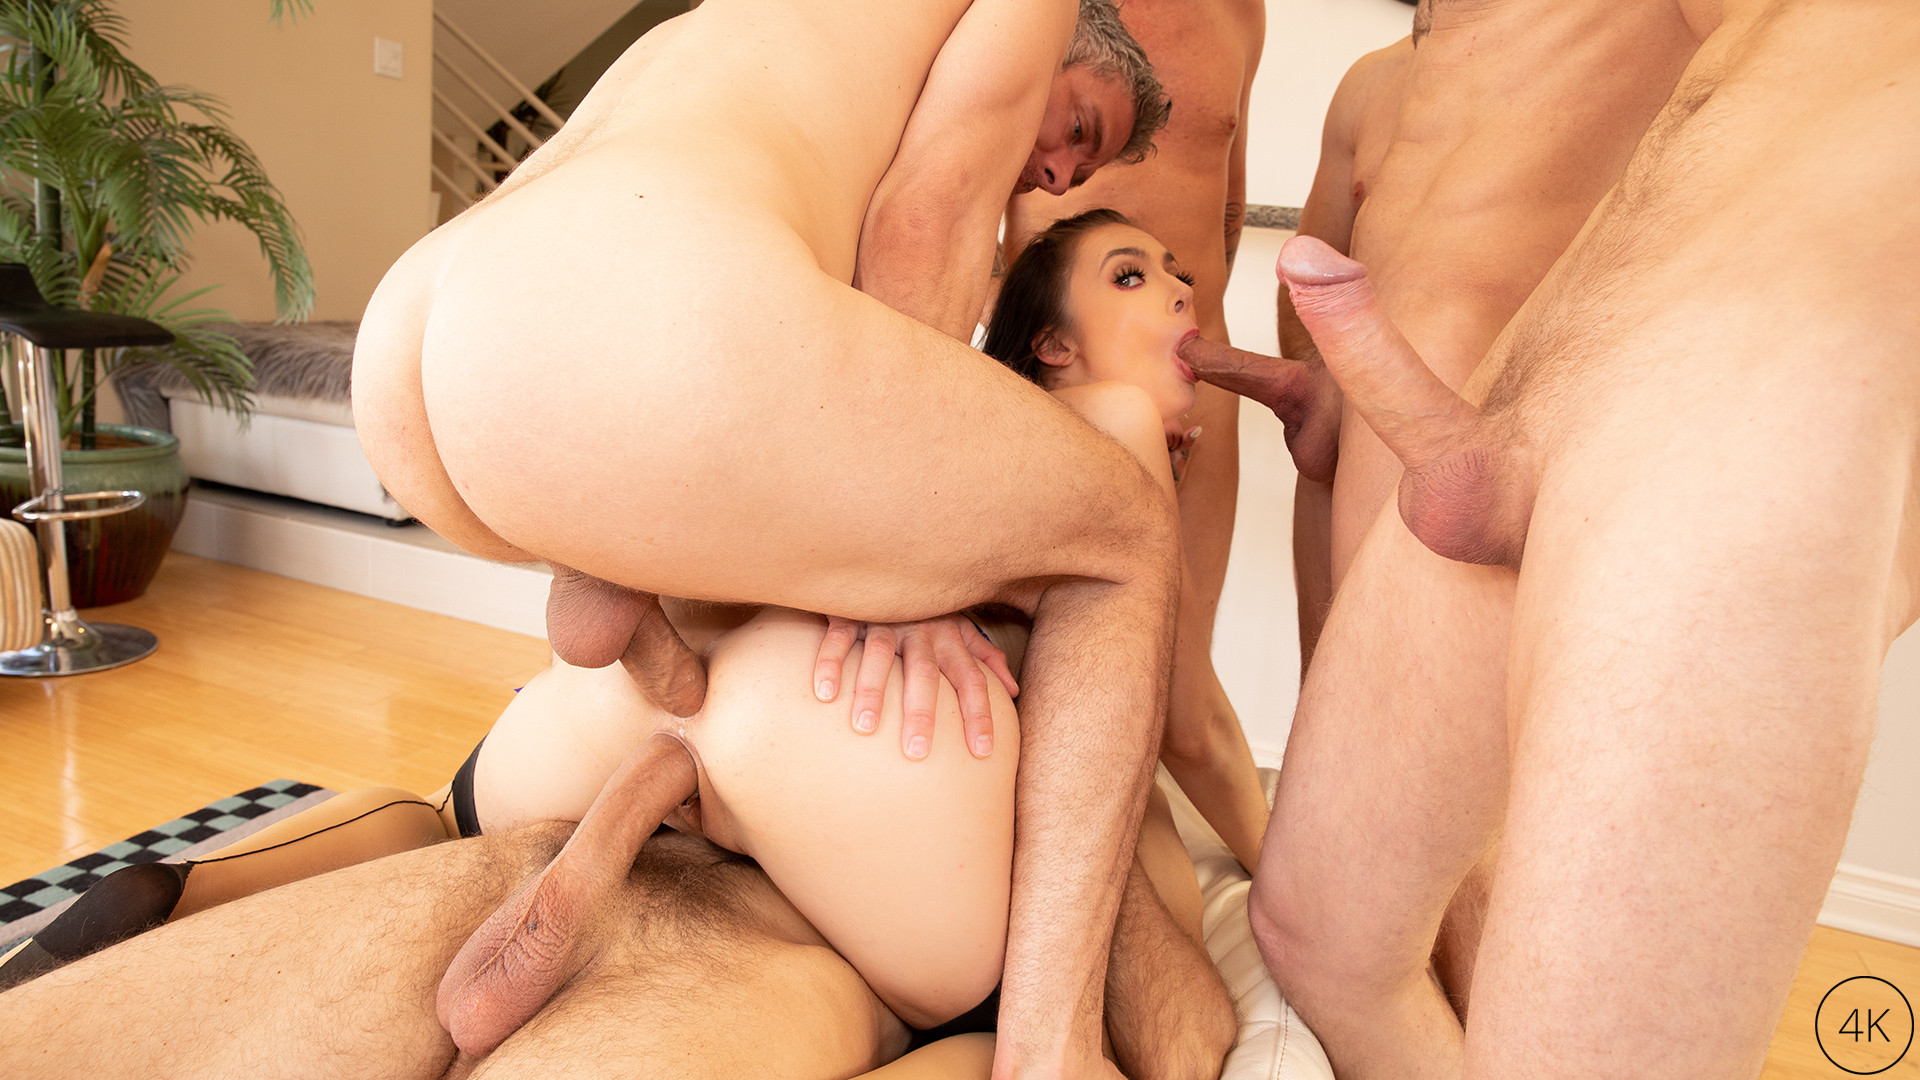 JulesJordan.com - The Gangbang Of Marley Brinx